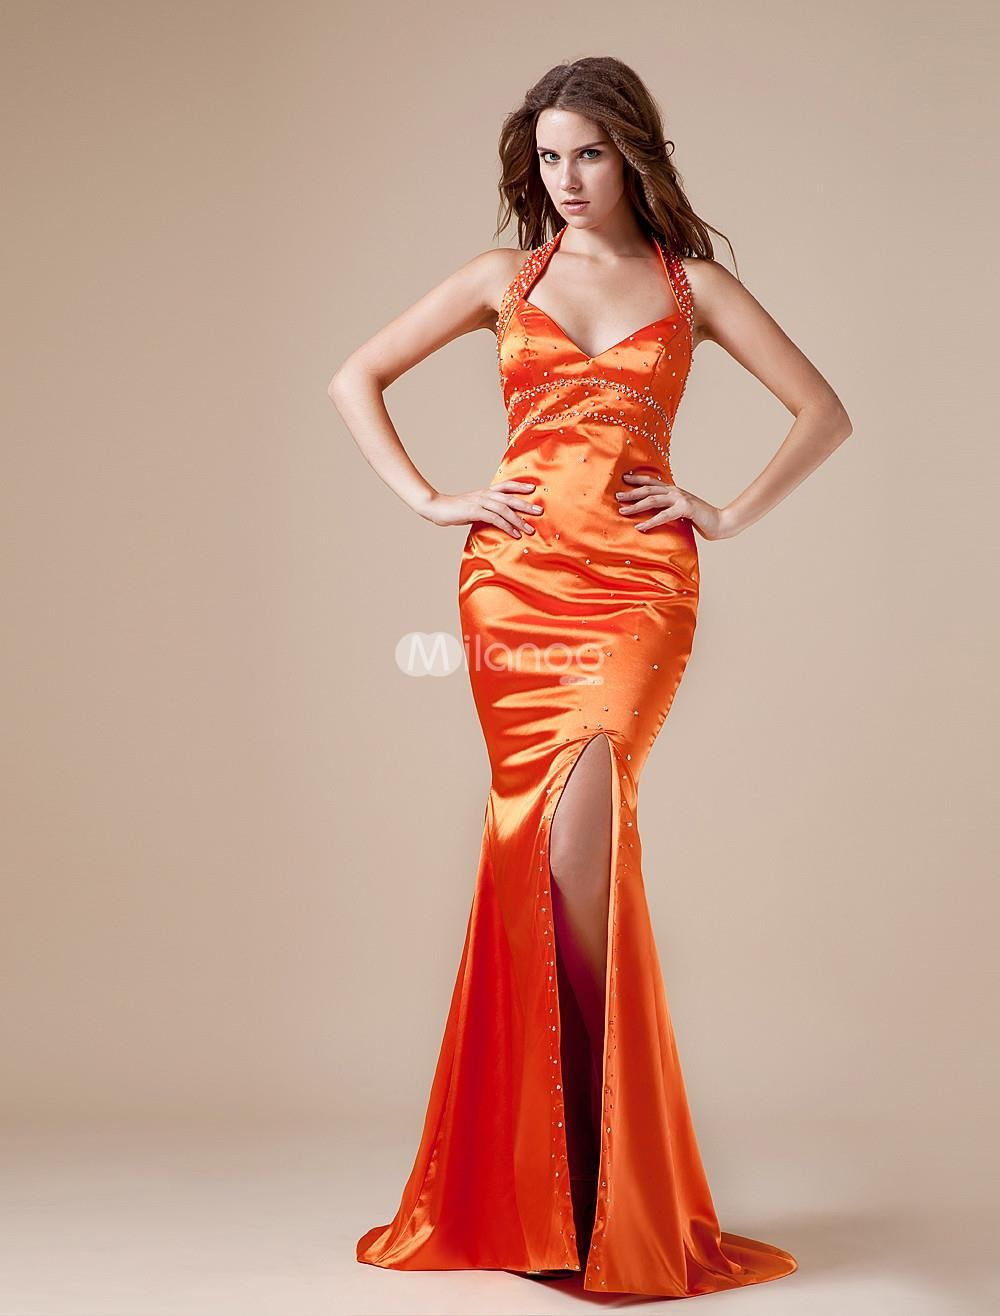 Orange Spaghetti Floor Length Eastic Woven Satin Prom Dress. Orange Spaghetti Floor Length Eastic Woven Satin Prom Dress. See More Colorful Prom at http://www.ourgreatshop.com/Colorful-Prom-C945.aspx